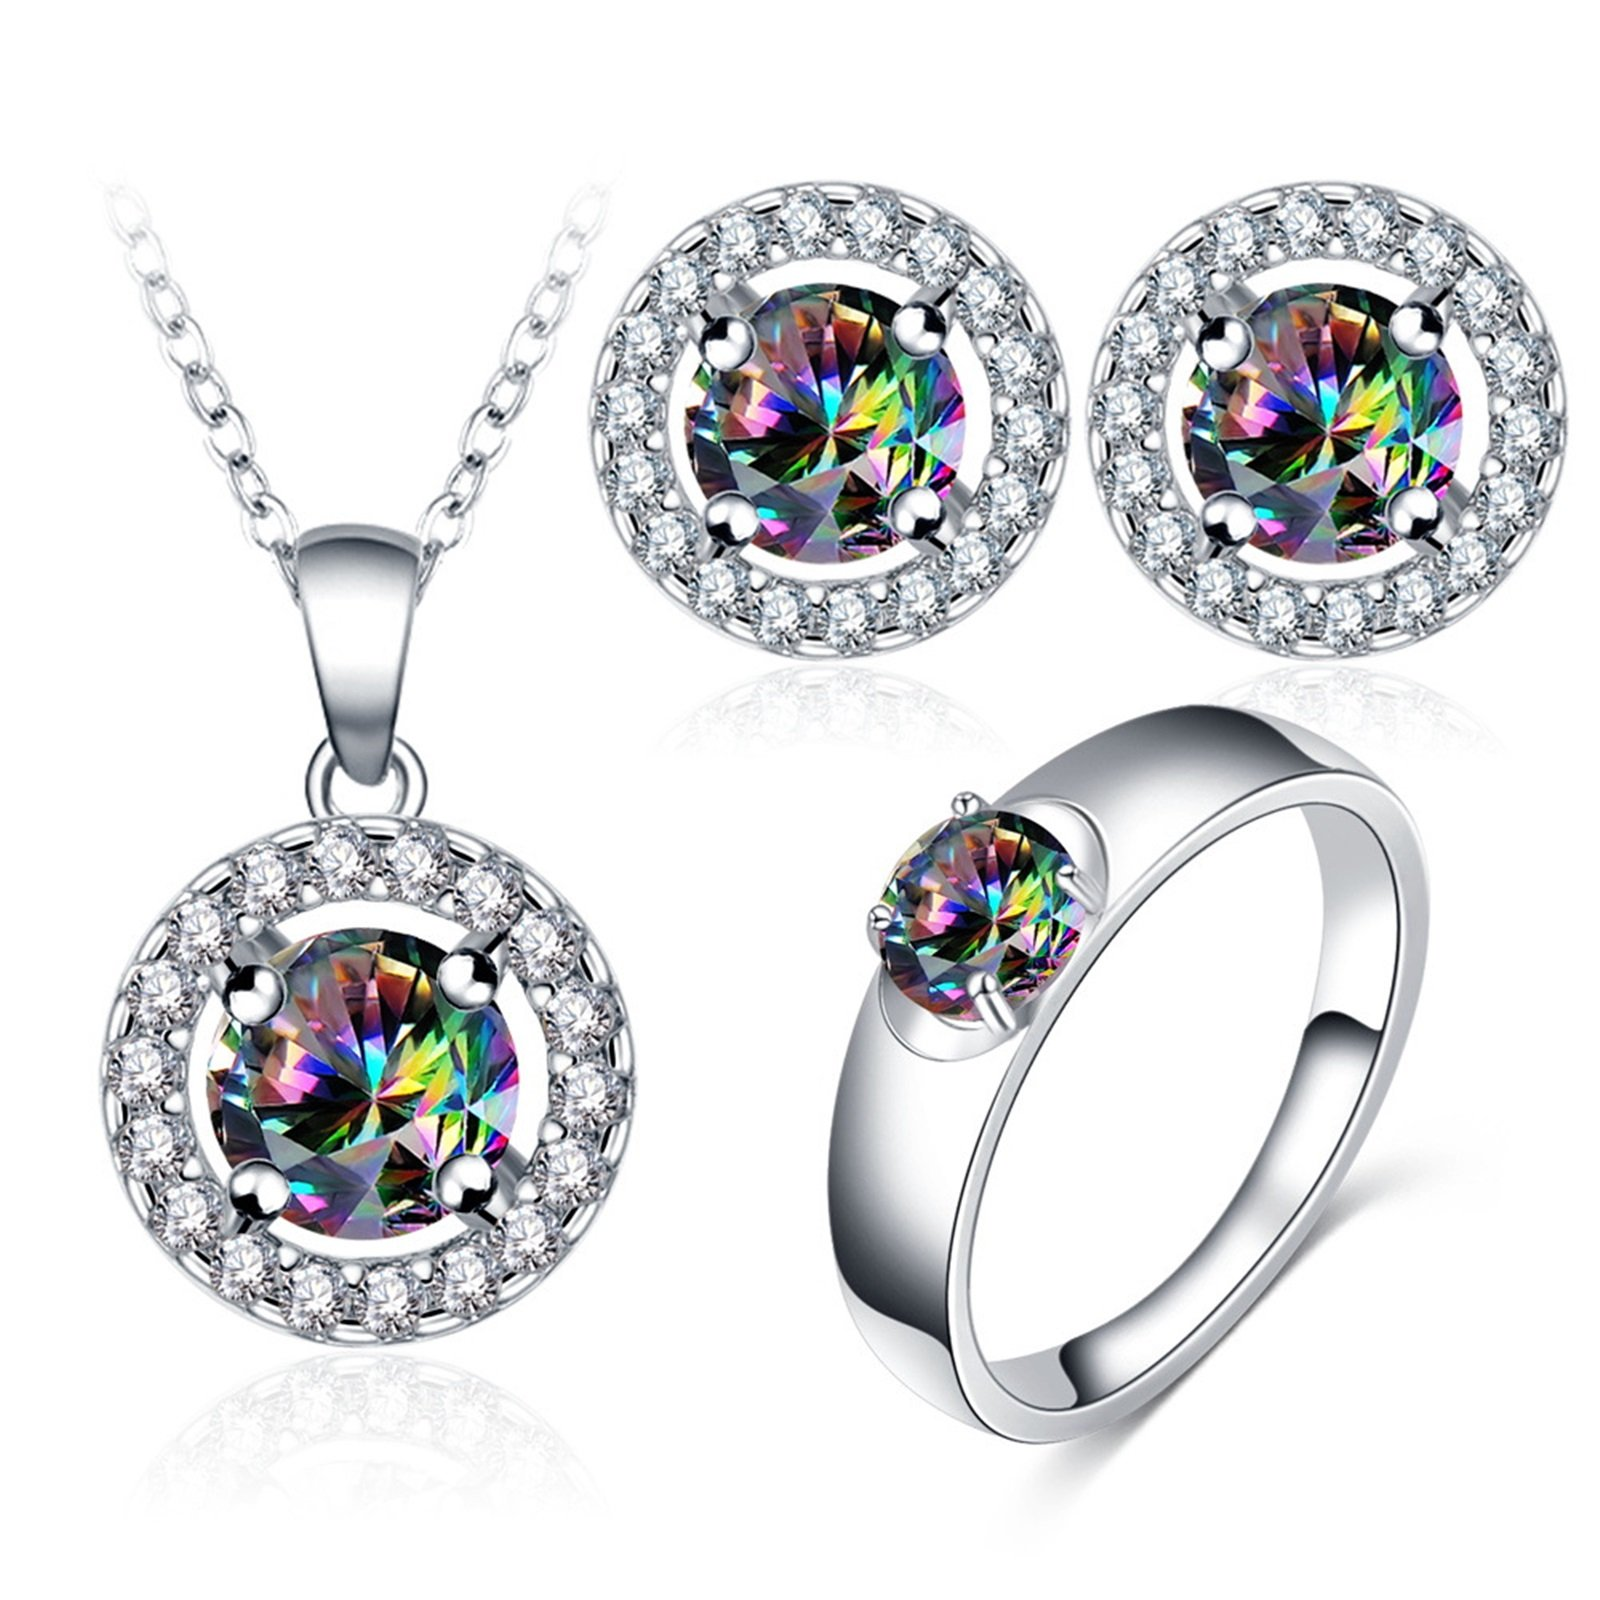 Daesar Necklace Earrings Ring Jewelry Set for Women Cubic Zirconia Colorful Silver Ring Size 8